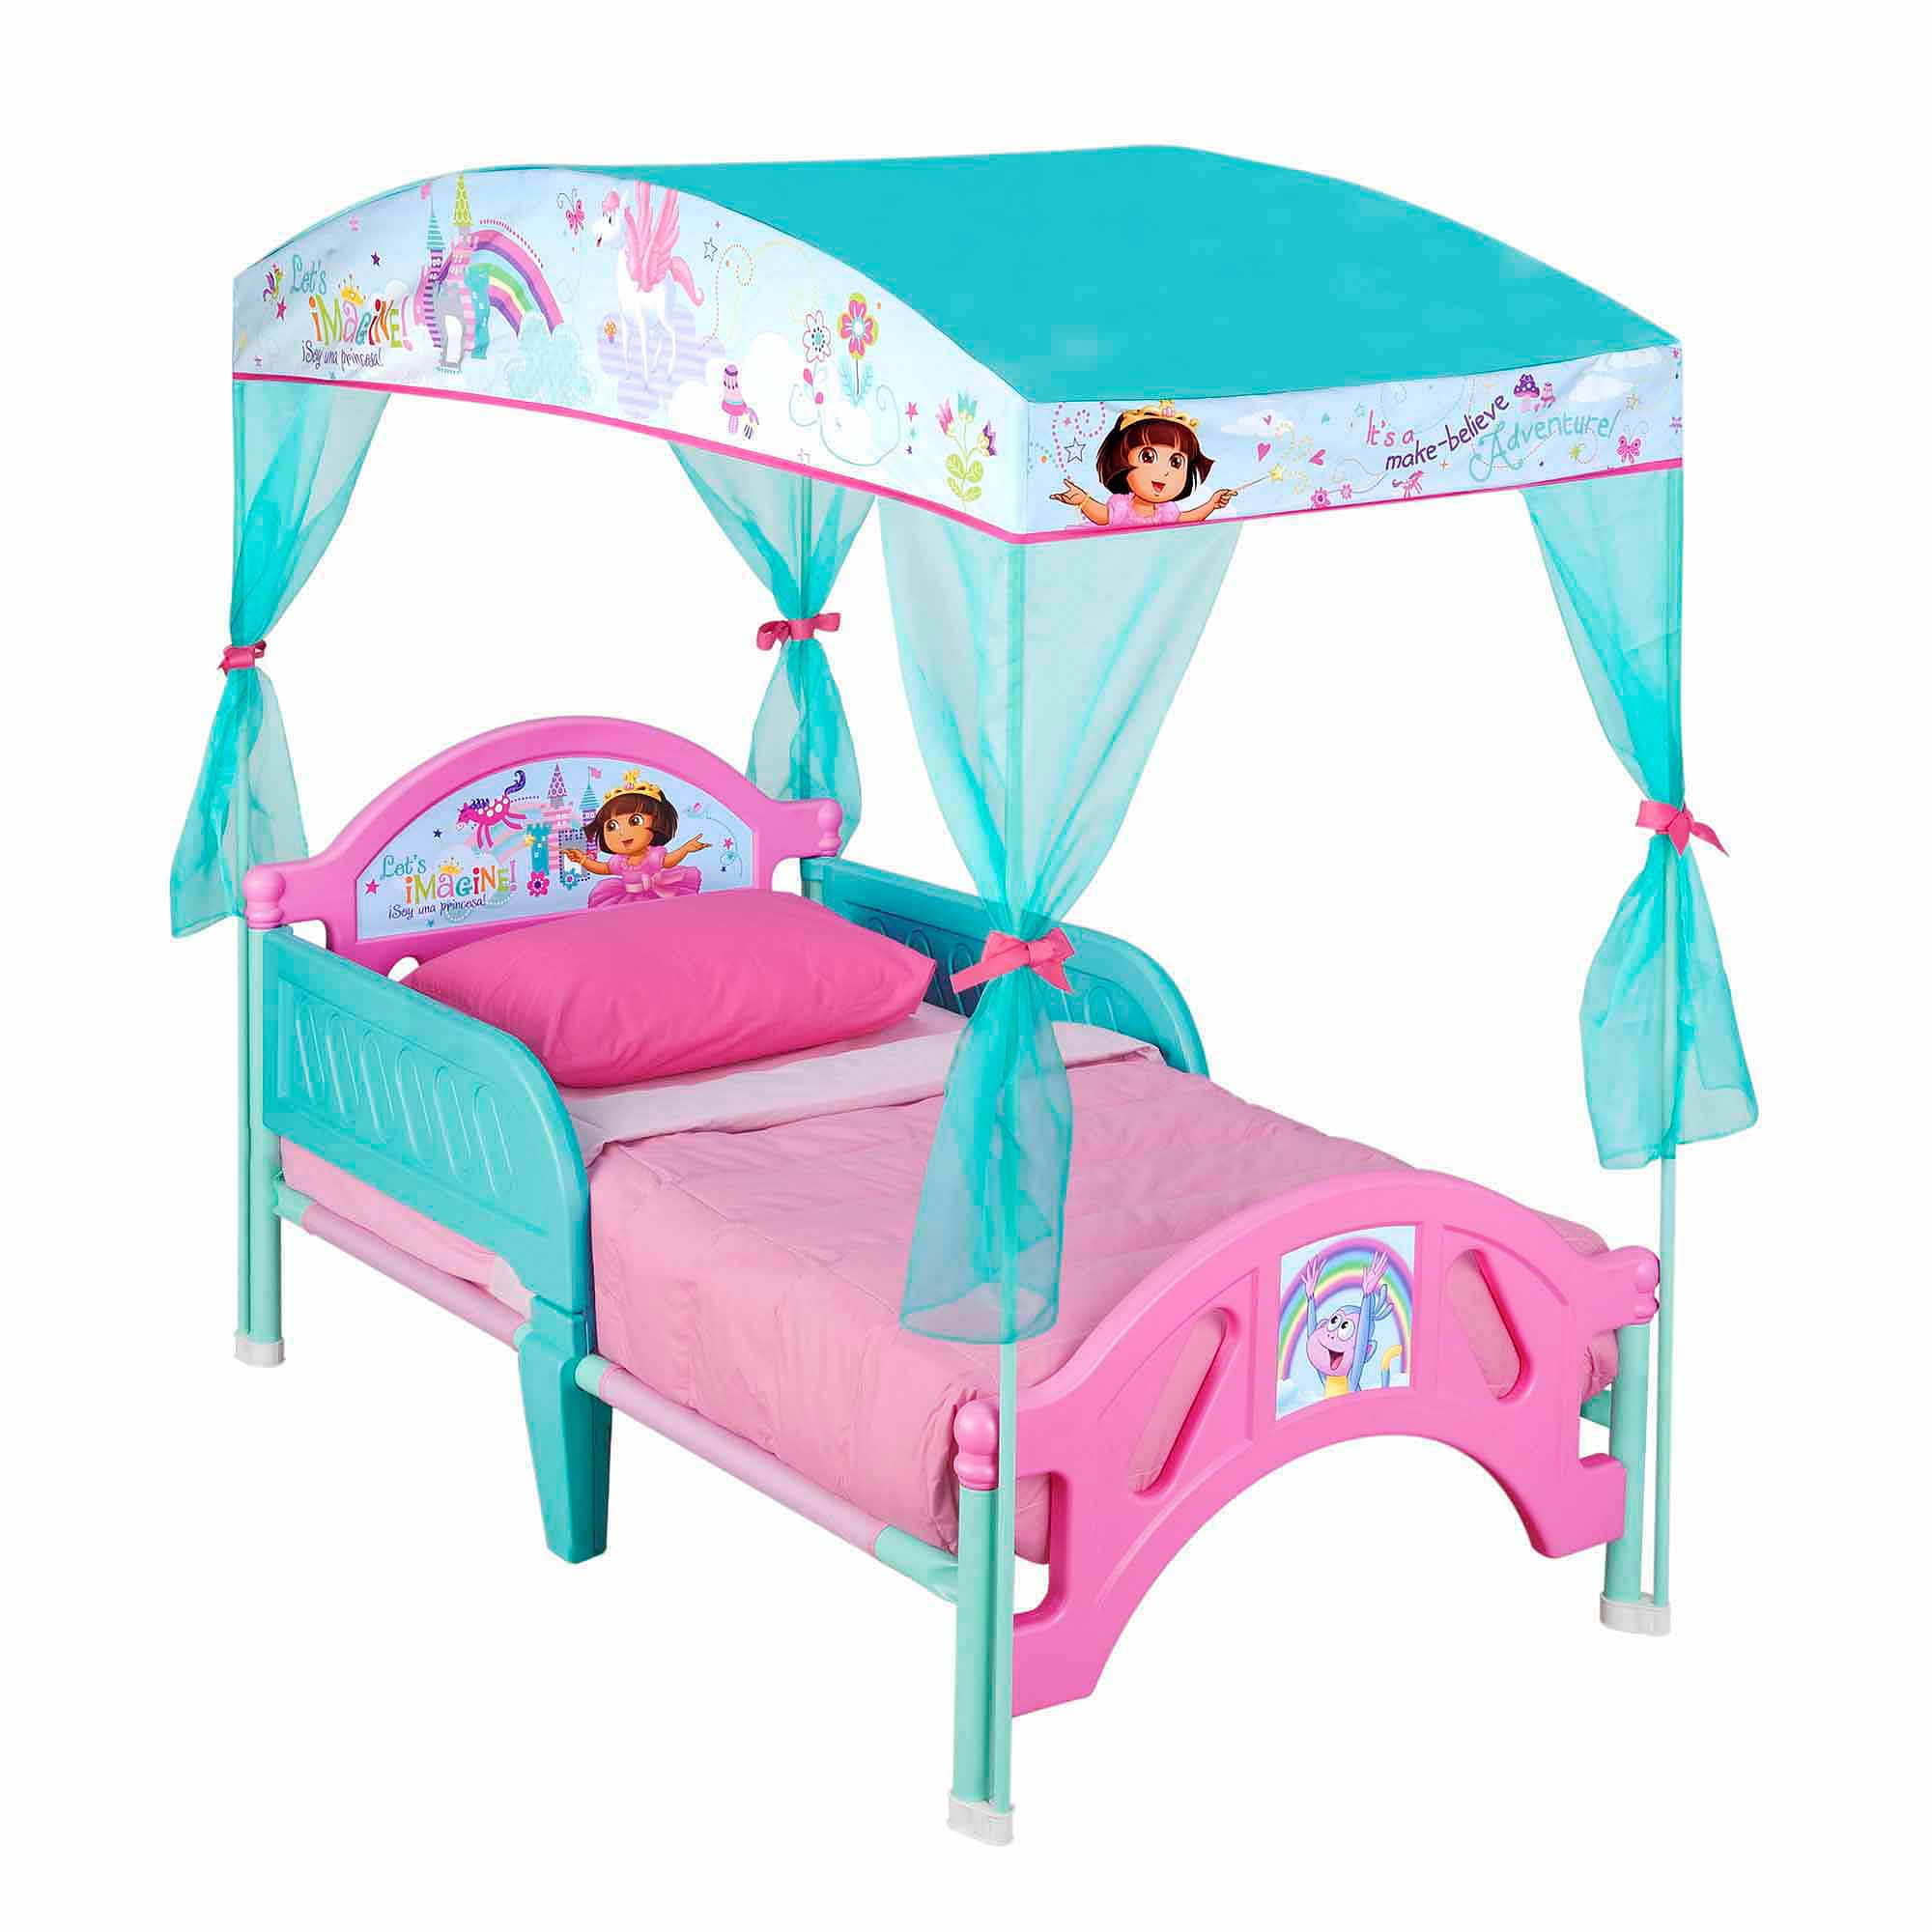 Nickelodeon Dora the Explorer Canopy Toddler Bed